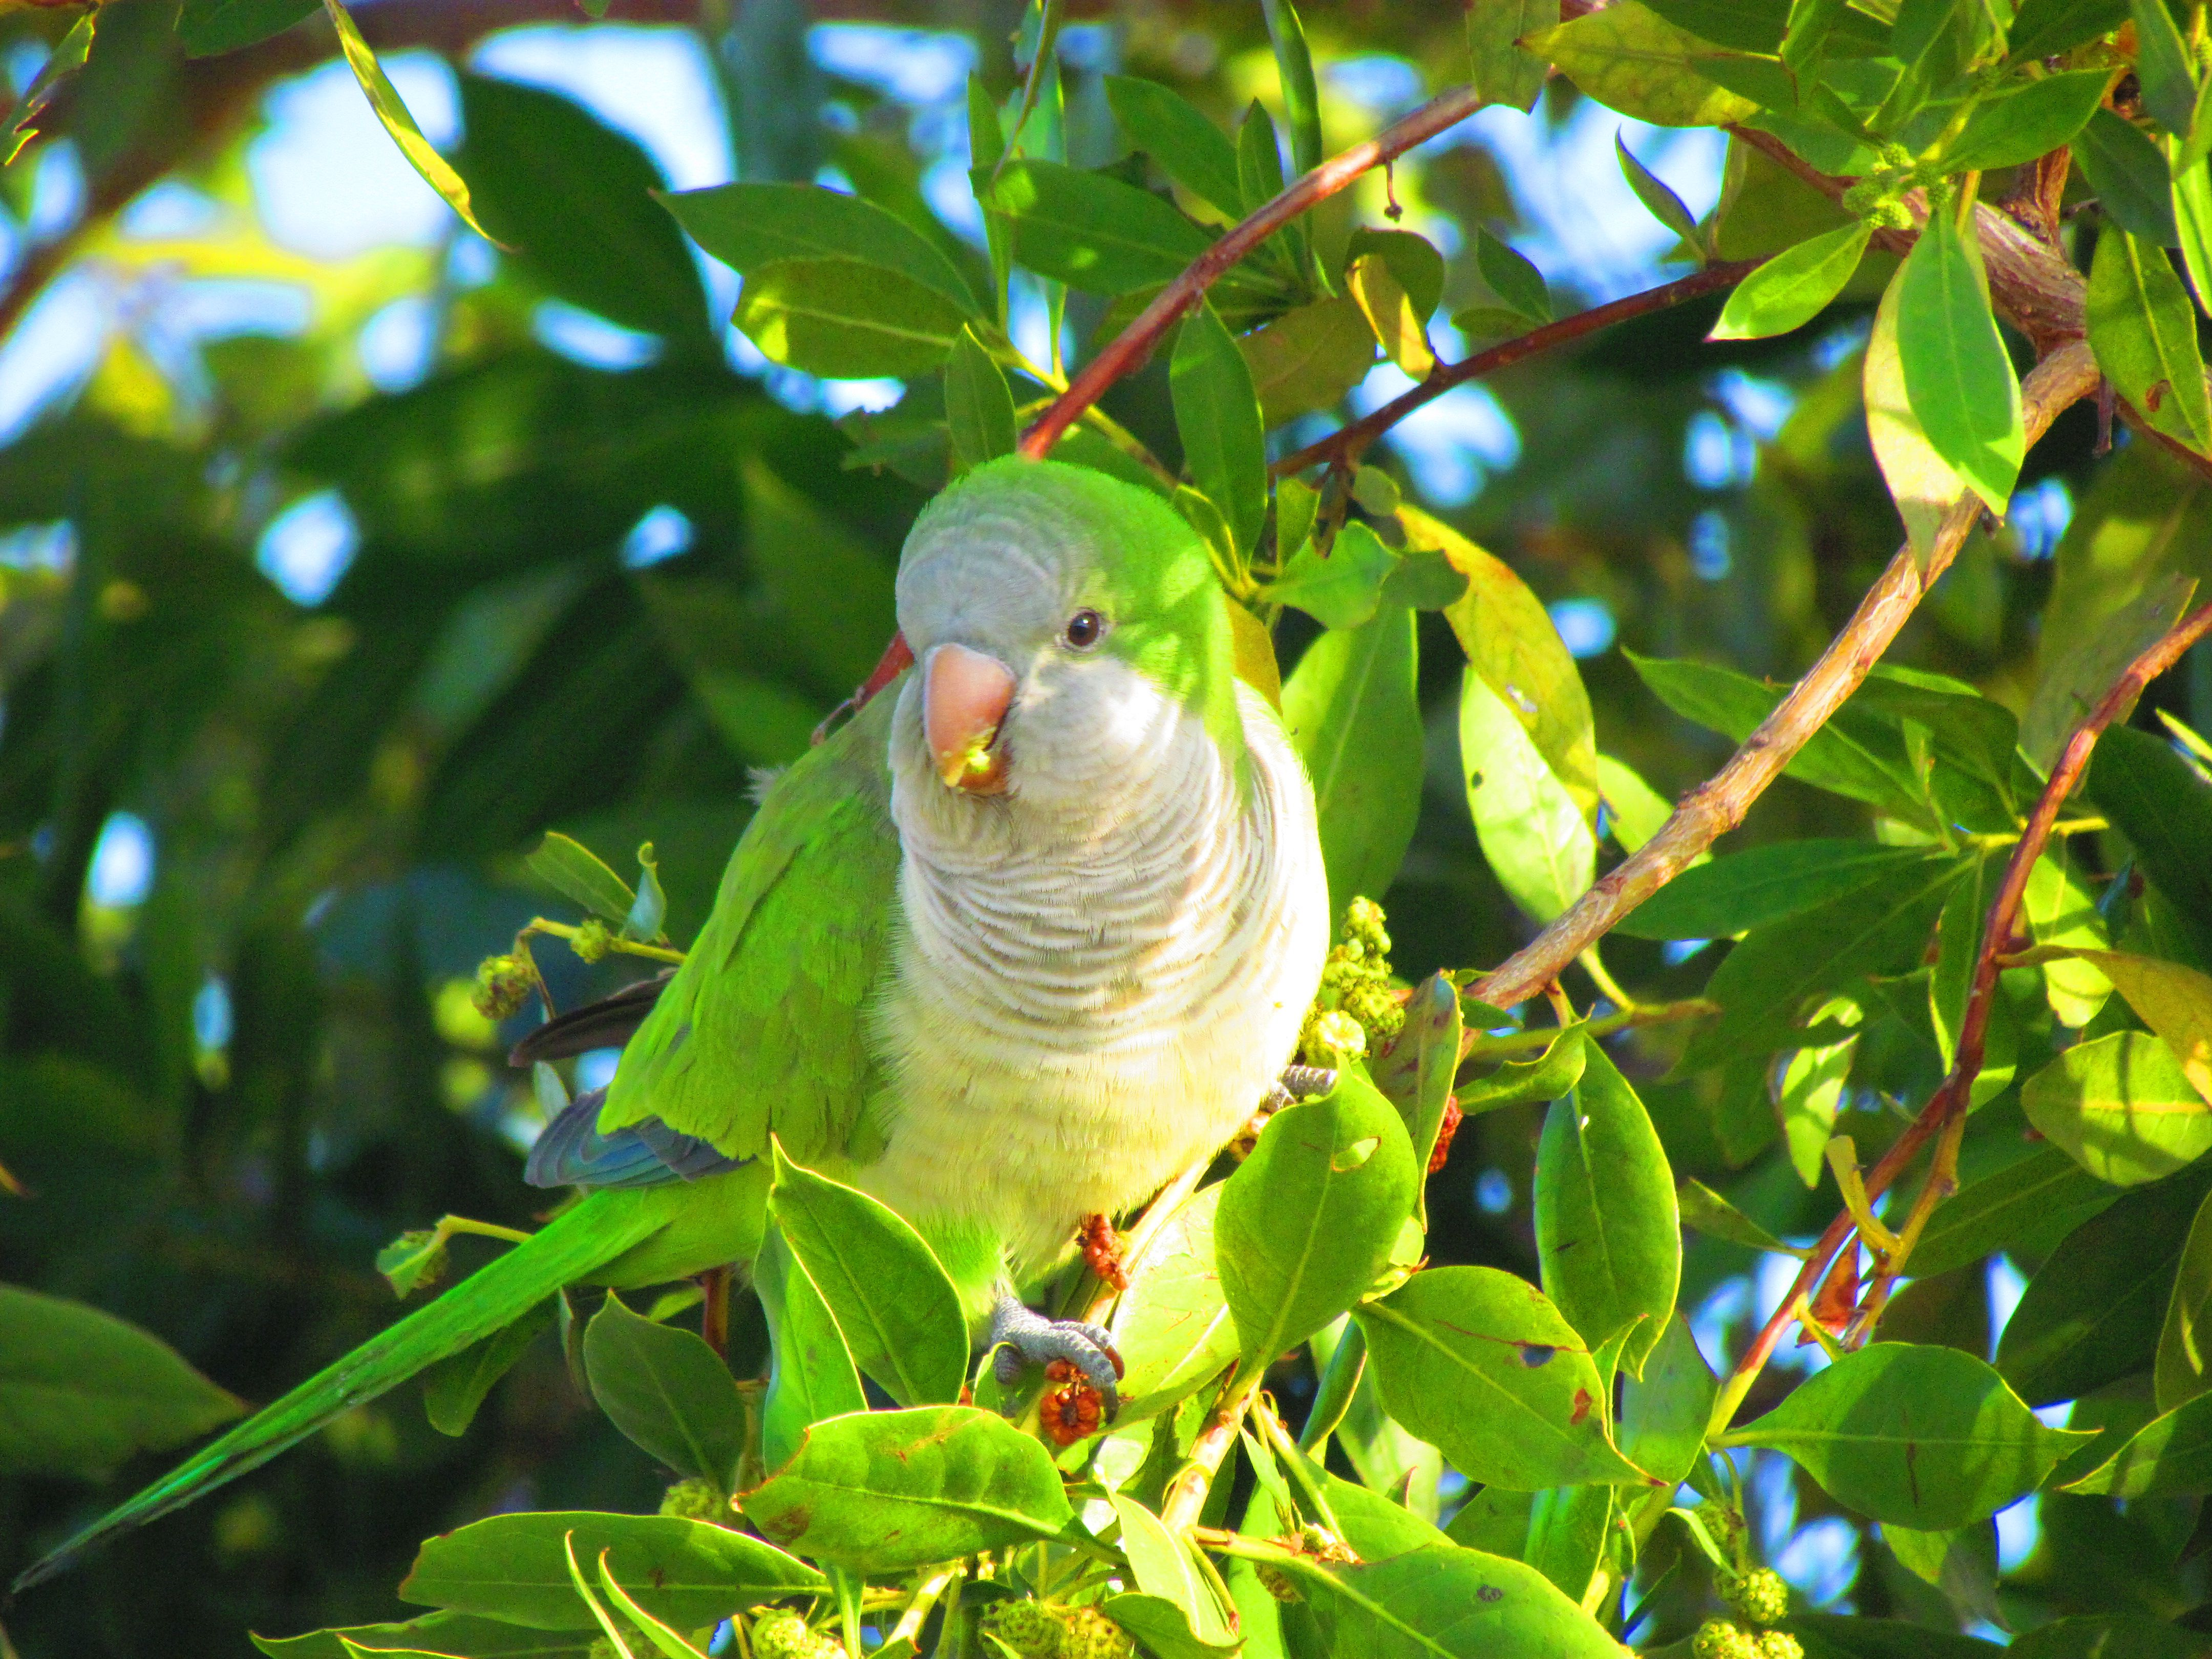 Quaker parrot in a tree